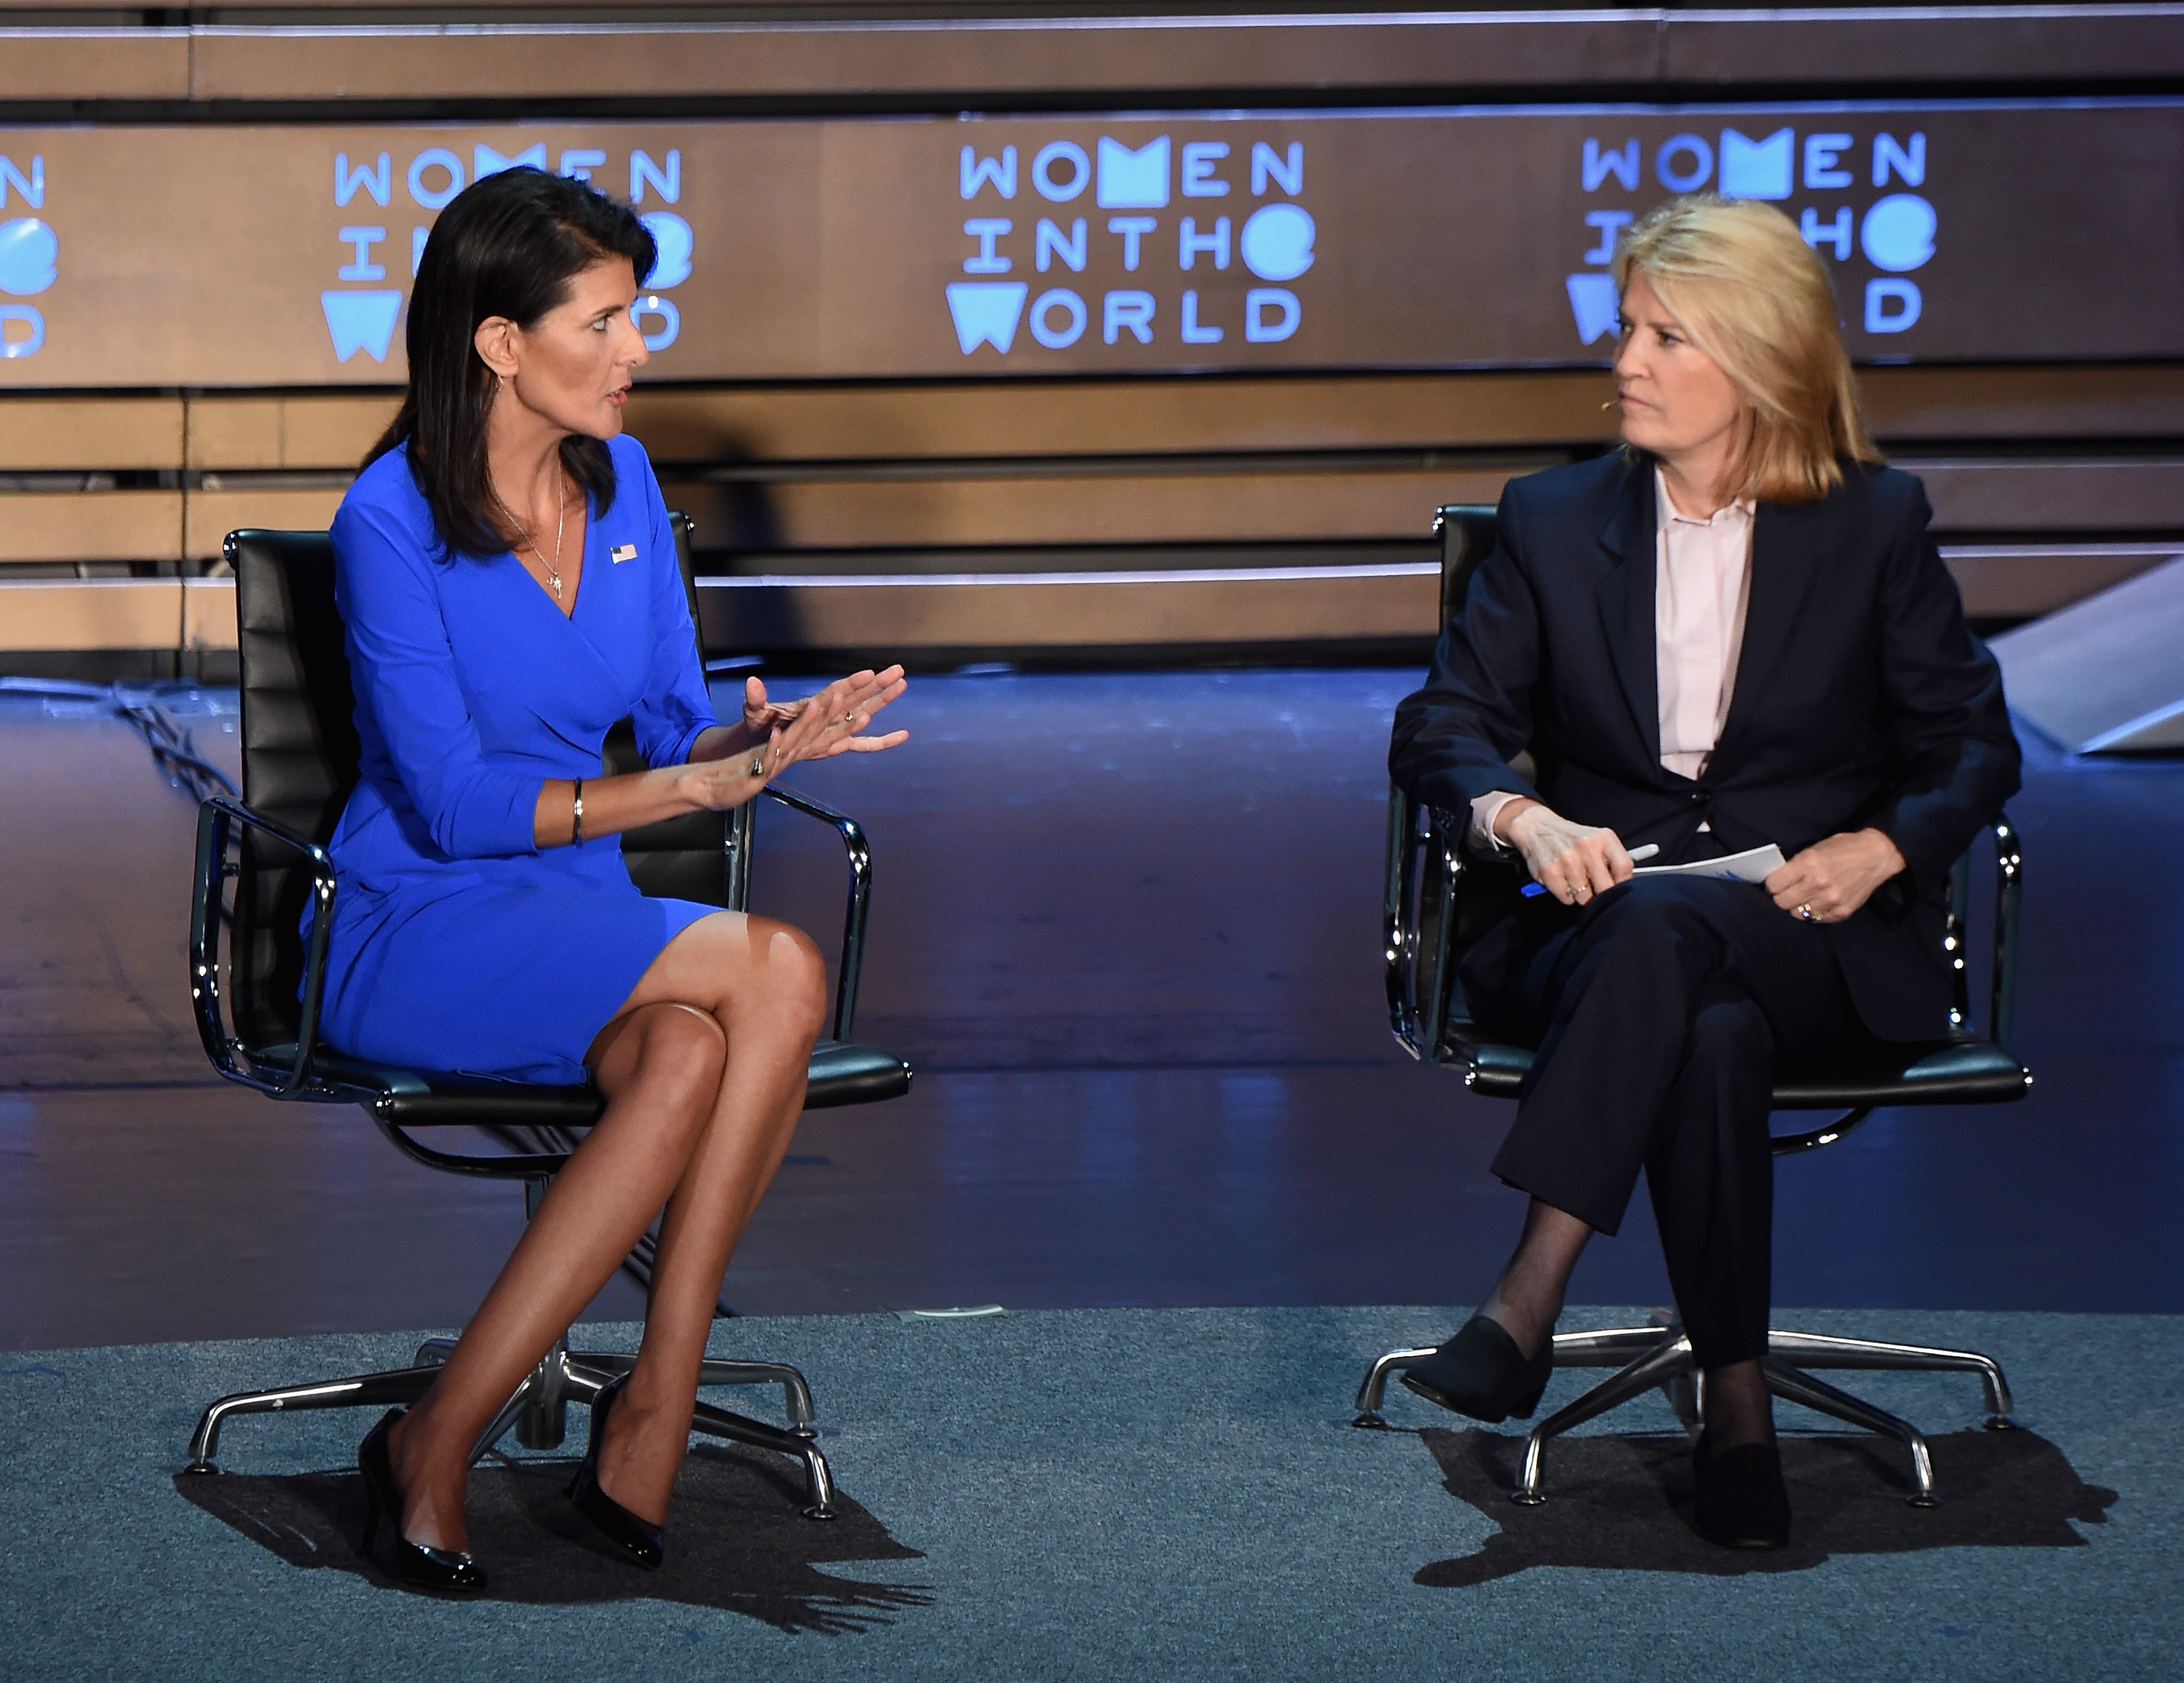 United States Ambassador to the United Nations, Nikki Haley and news anchor Greta Van Susteren speak during the Eighth Annual Women In The World Summit at Lincoln Center for the Performing Arts on April 5, 2017 in New York City. (Photo by Michael Loccisano/Getty Images)